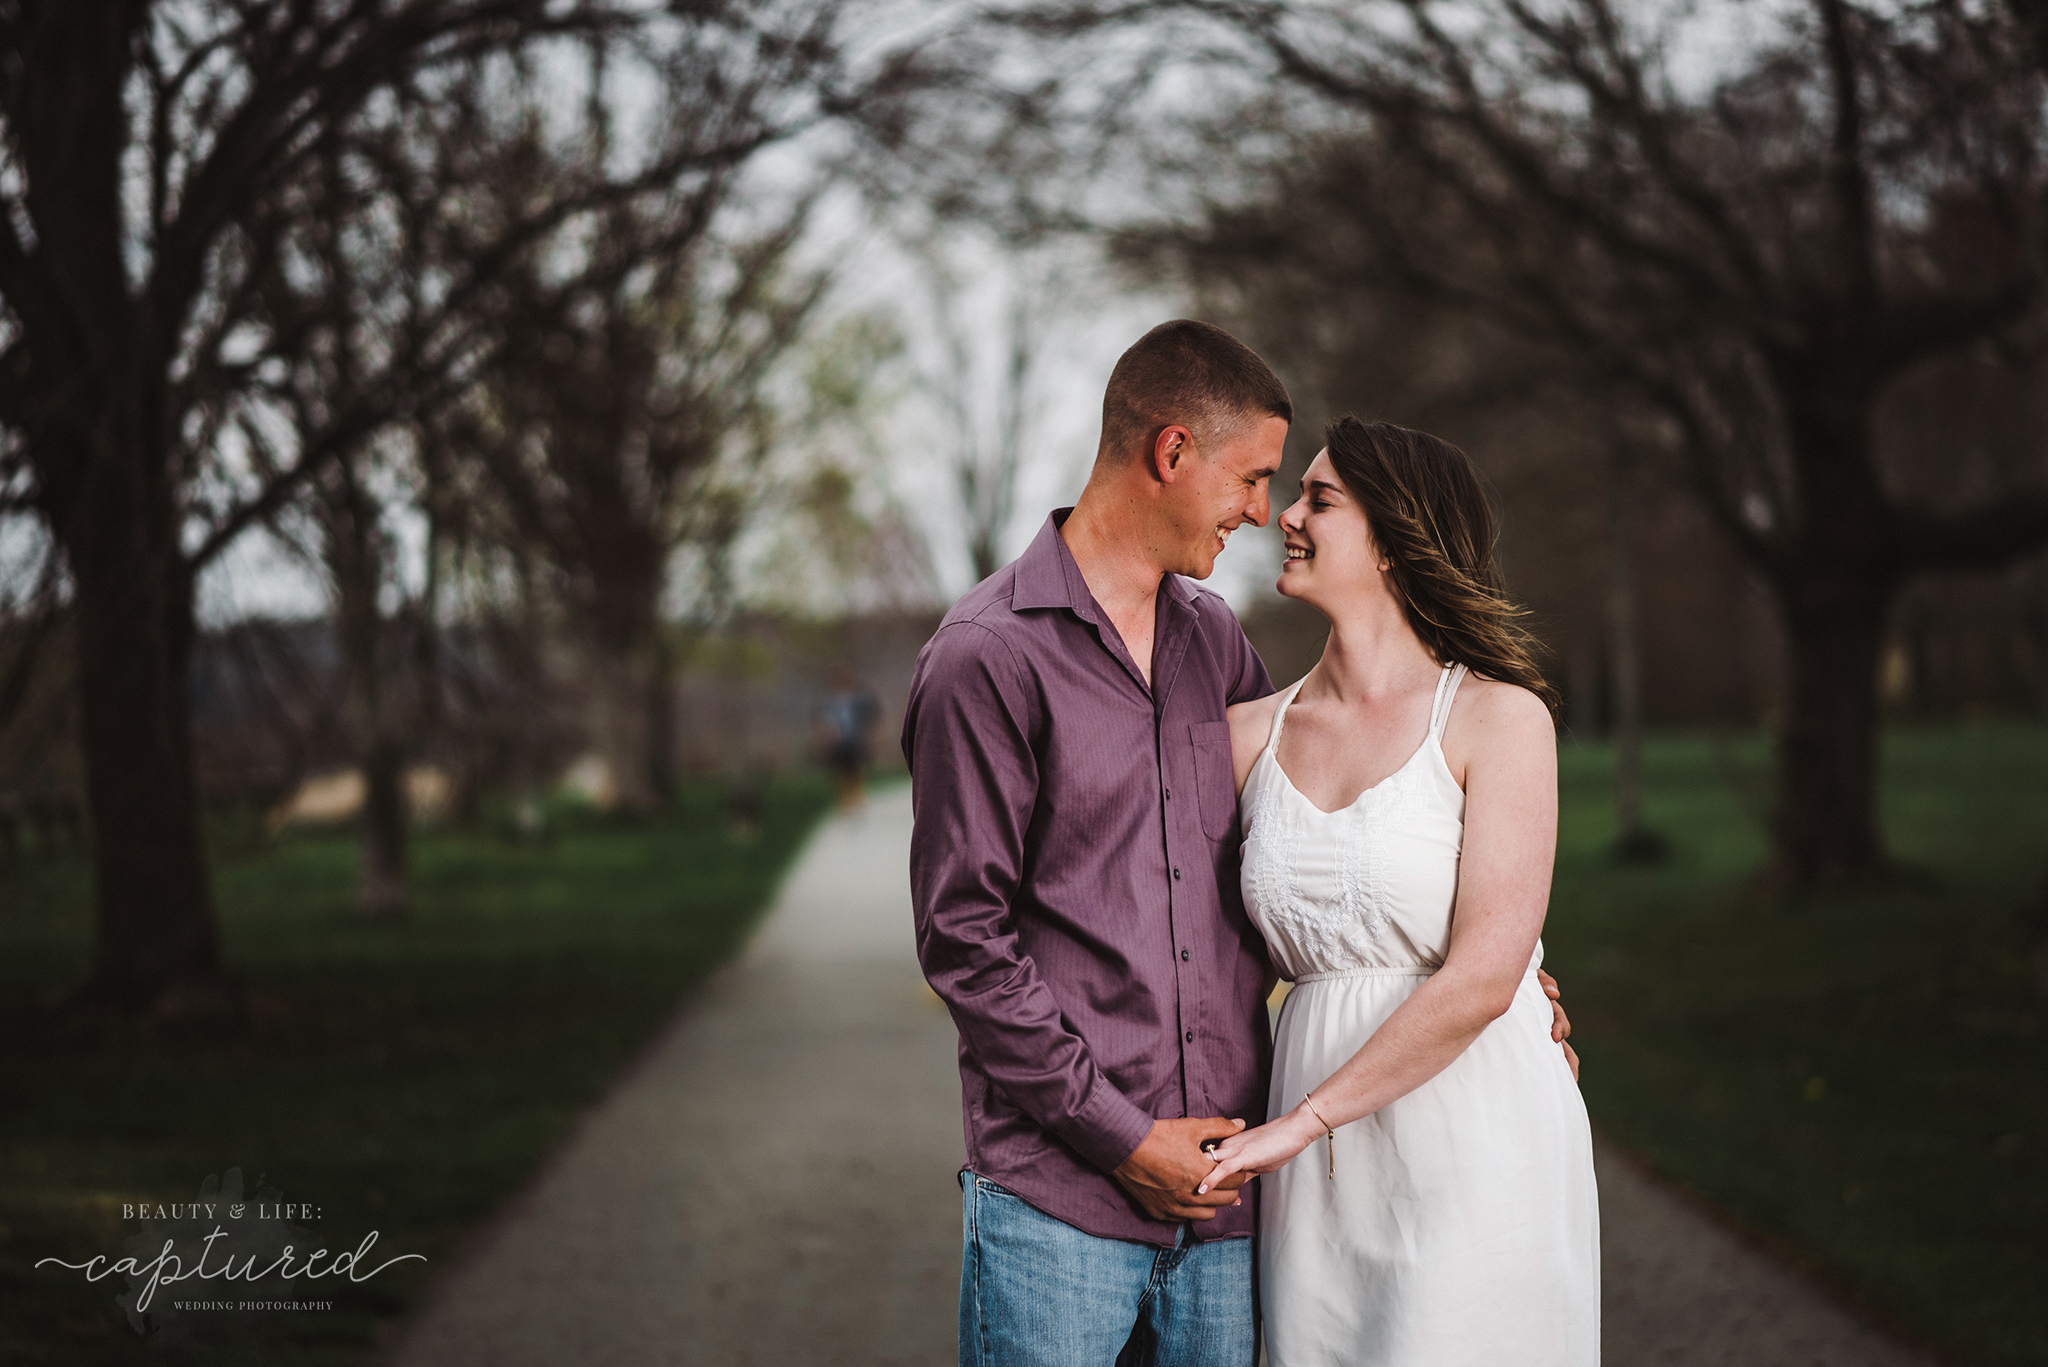 Beautyandlifecaptured_Christina_Engagement-3.jpg